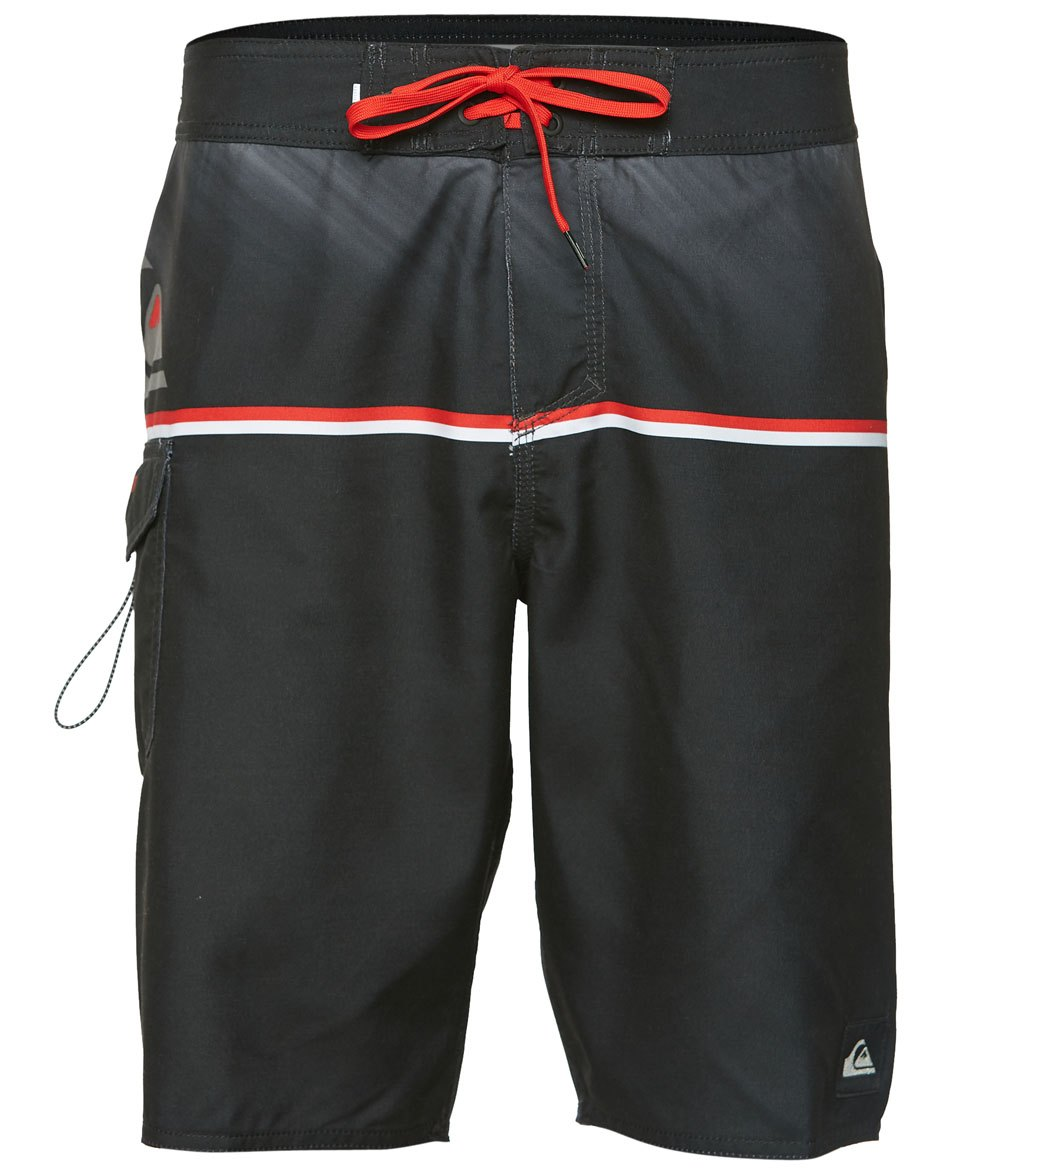 390f6f8a77ce Quiksilver Everyday Division 20